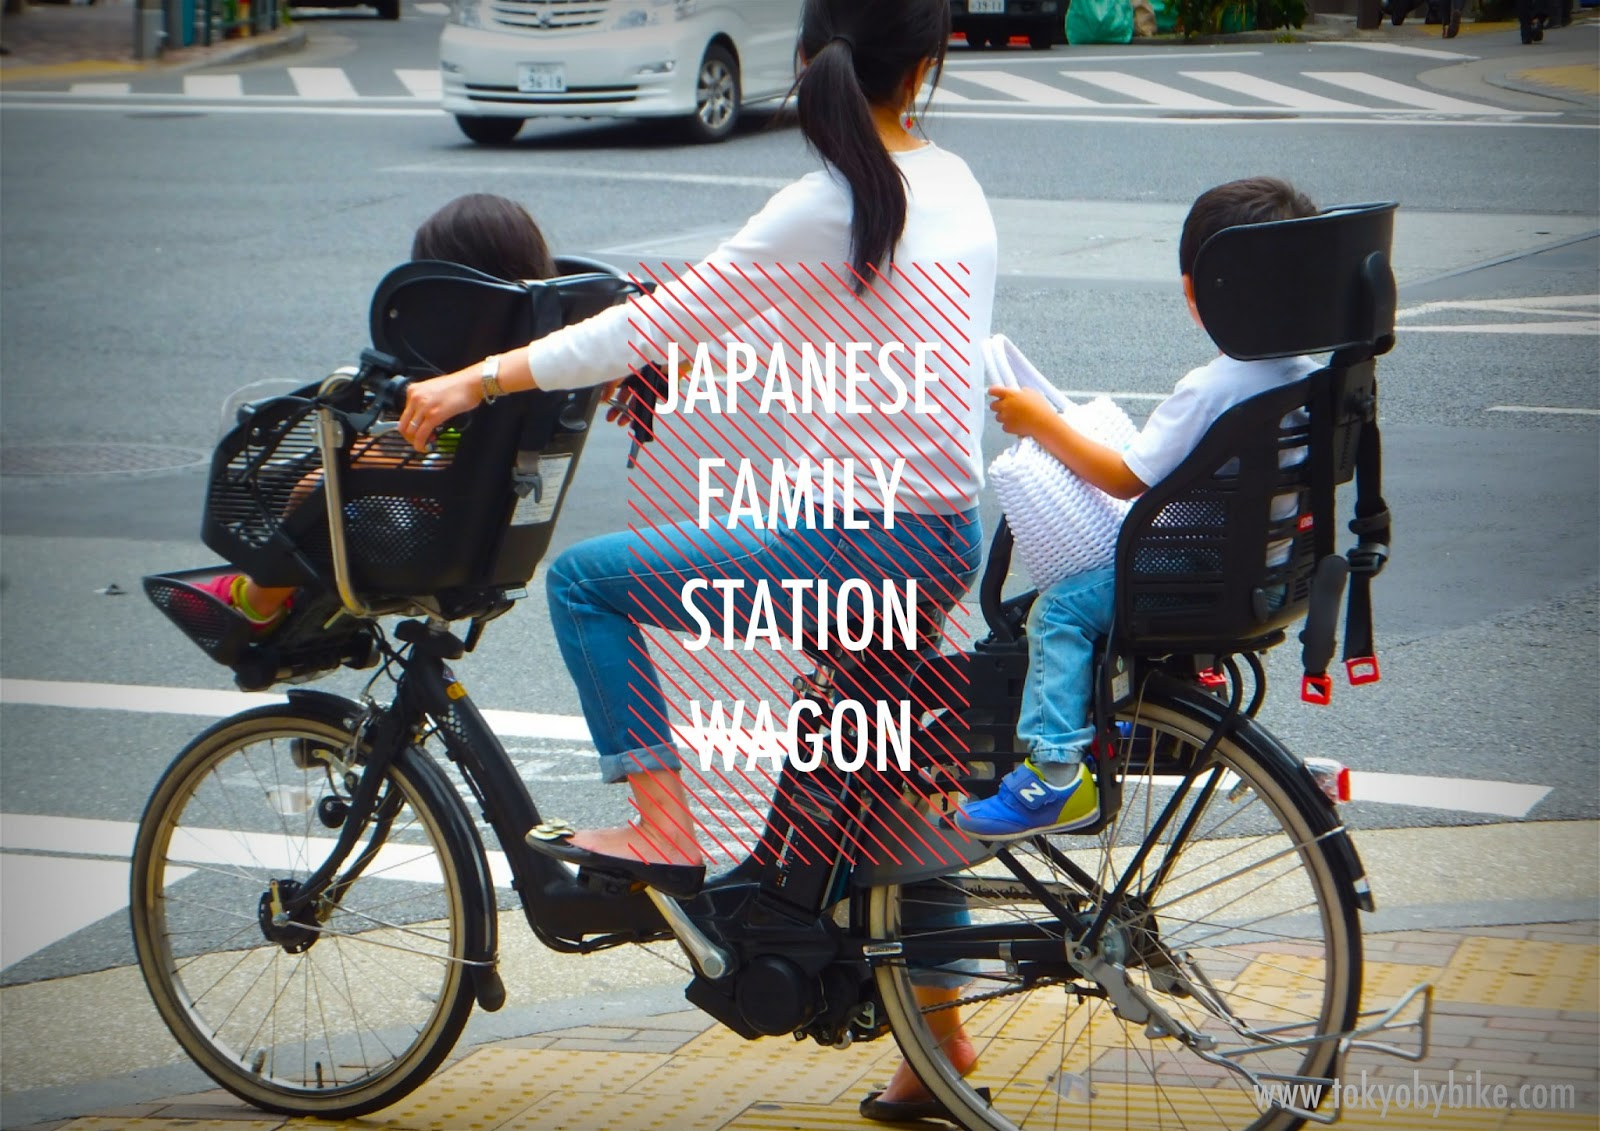 This Is The Japanese Family Station Wagon Tokyo By Bike